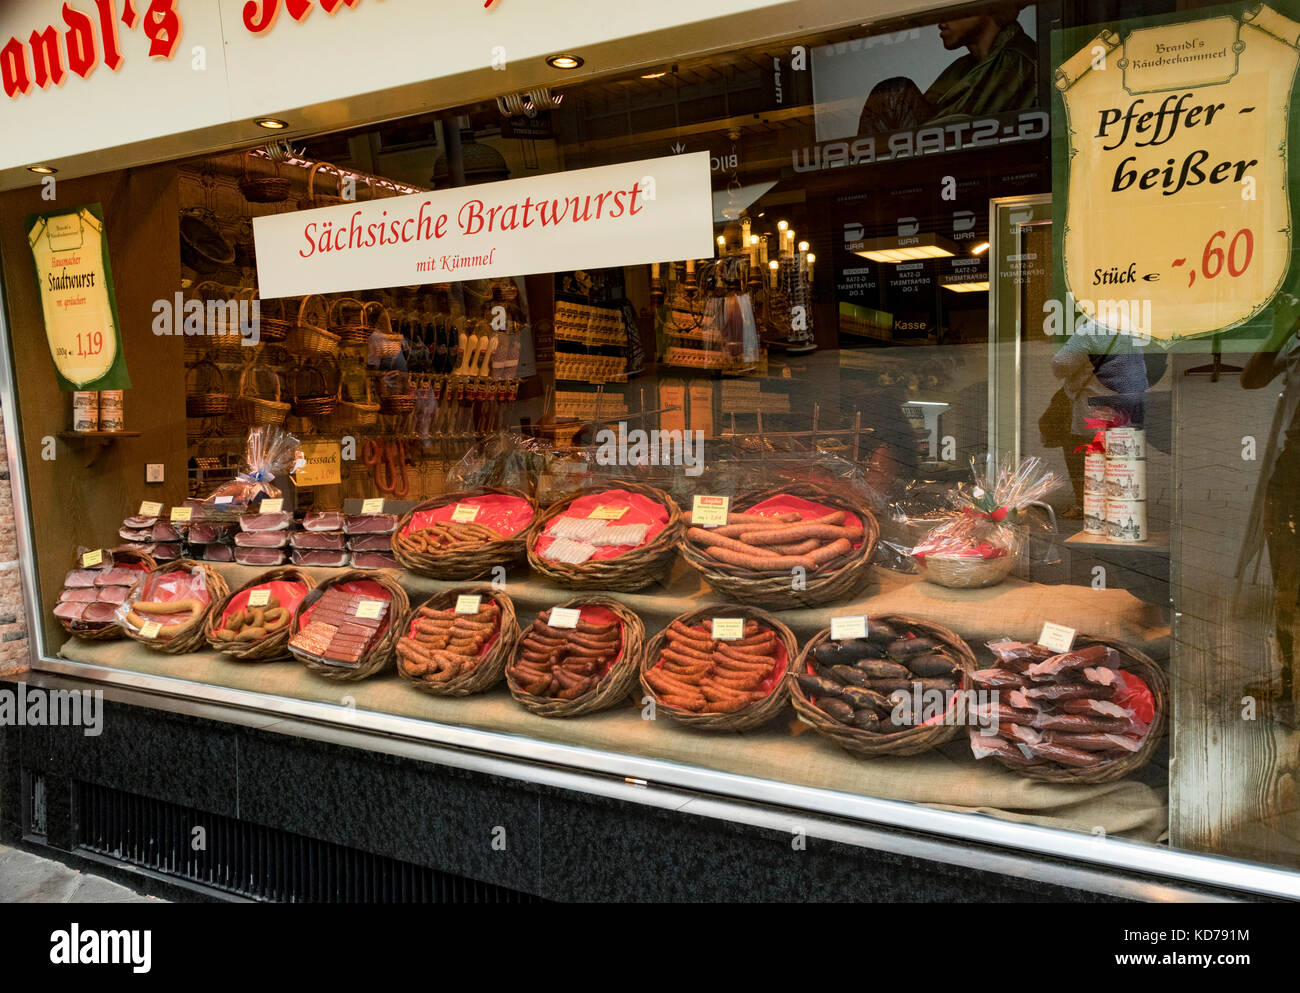 shop window sign sächsische Bratwurst mit kümmel, Saxon sausage with cumin, Nuremberg, Bavaria, Germany Stock Photo